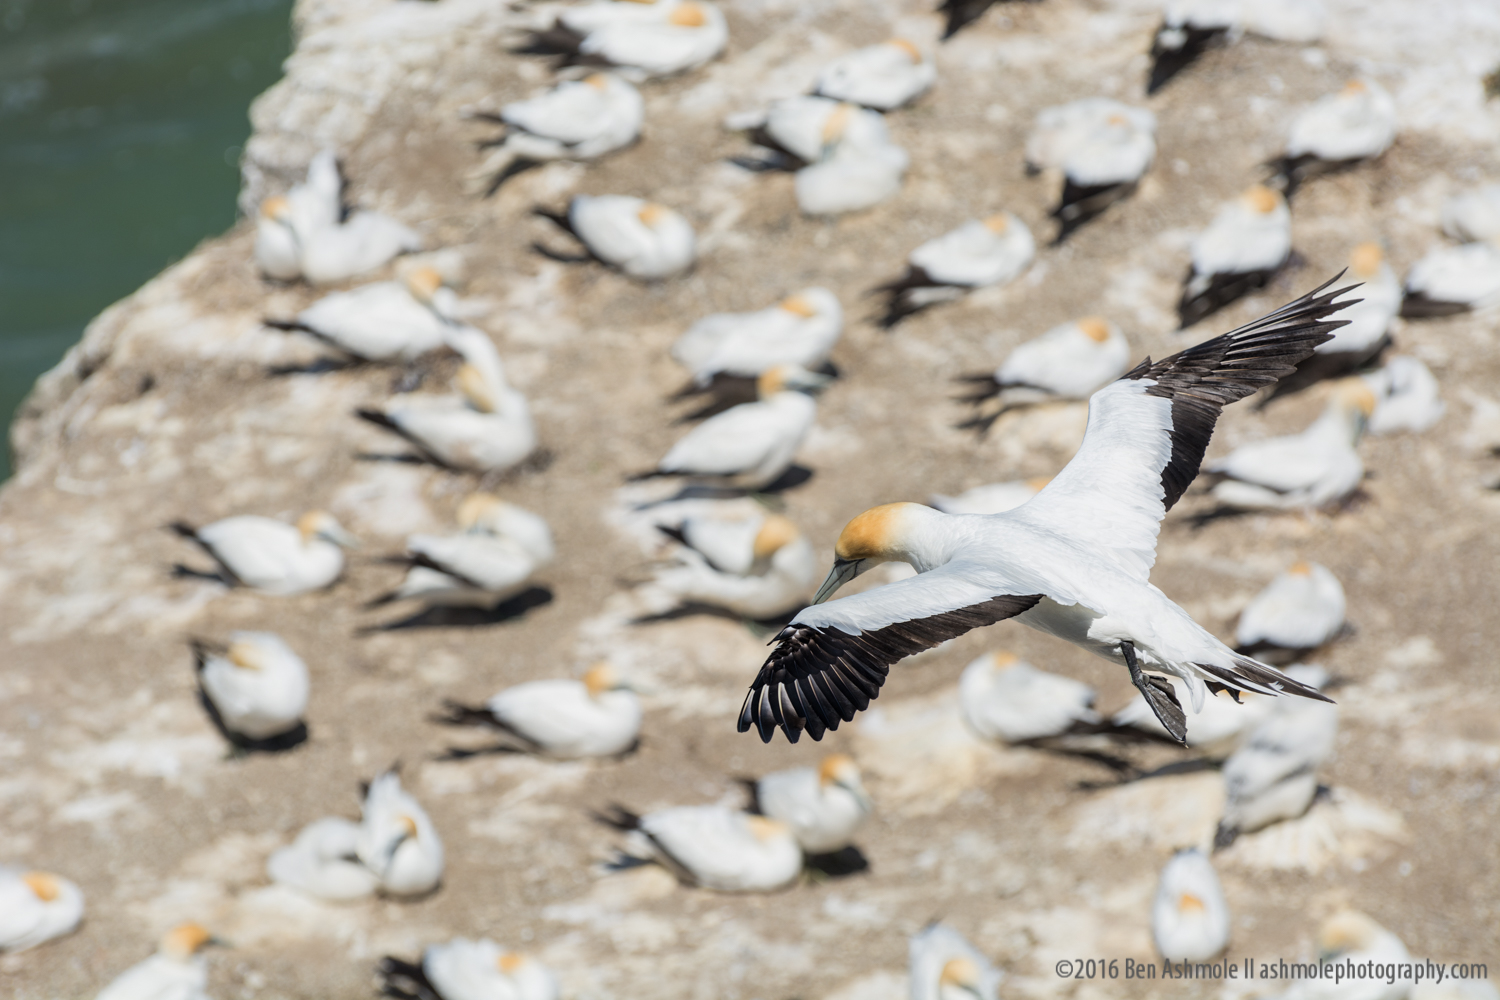 Gannet Hovering Over Colony, Muriwai Beach, New Zealand